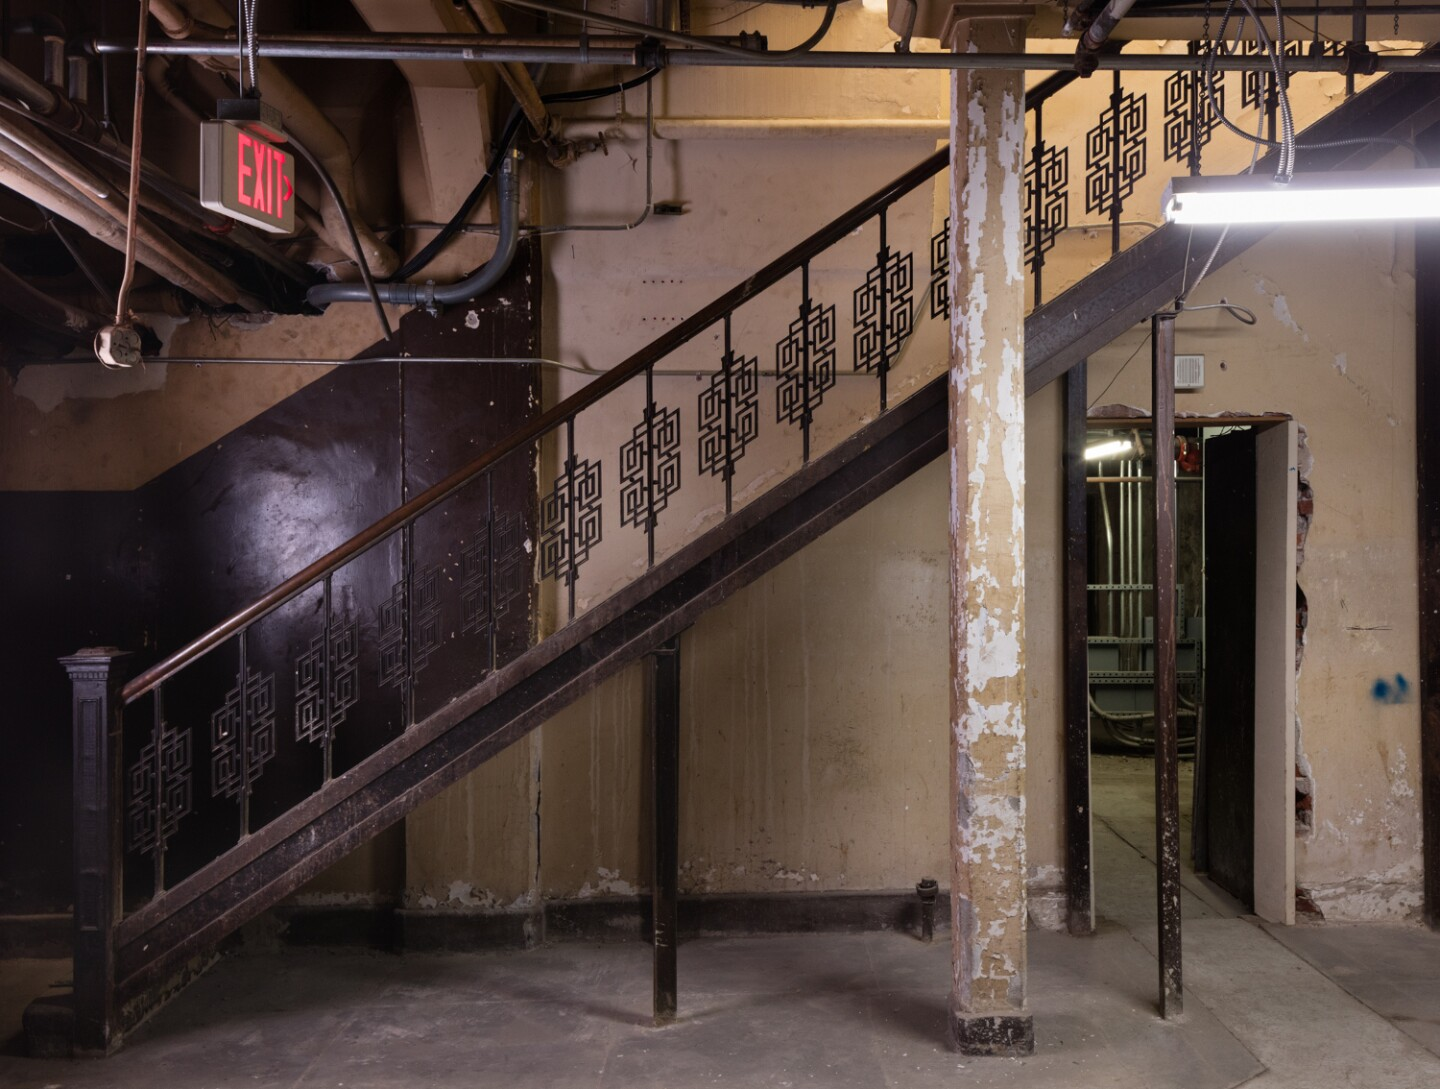 Basement staircase at the Main Museum of Los Angeles